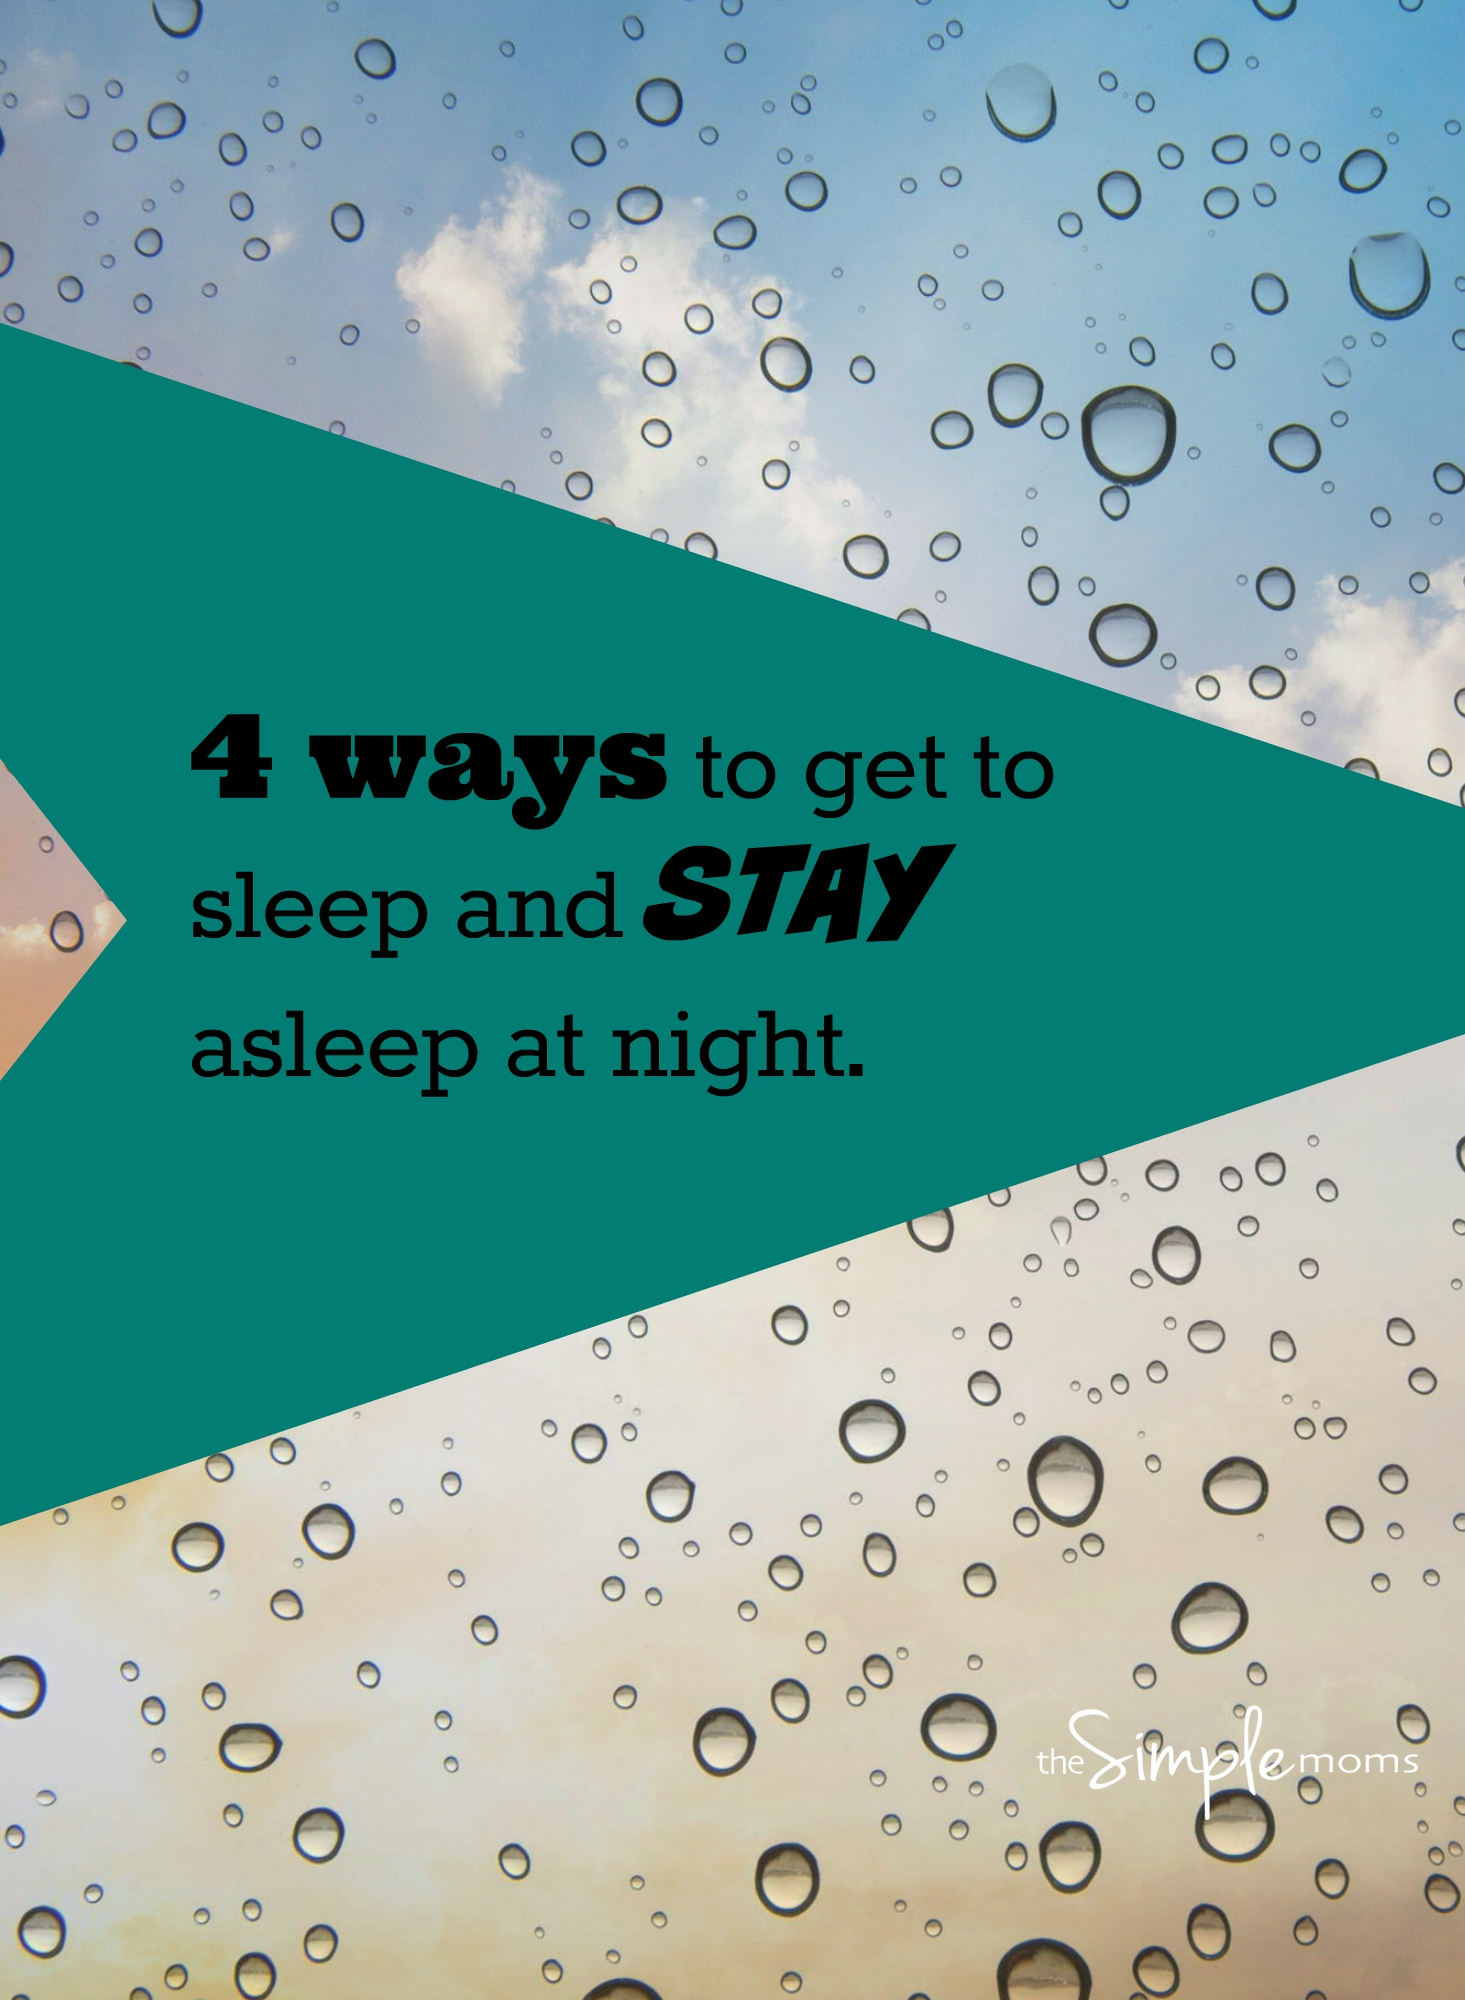 4 ways to get to sleep and stay asleep at night